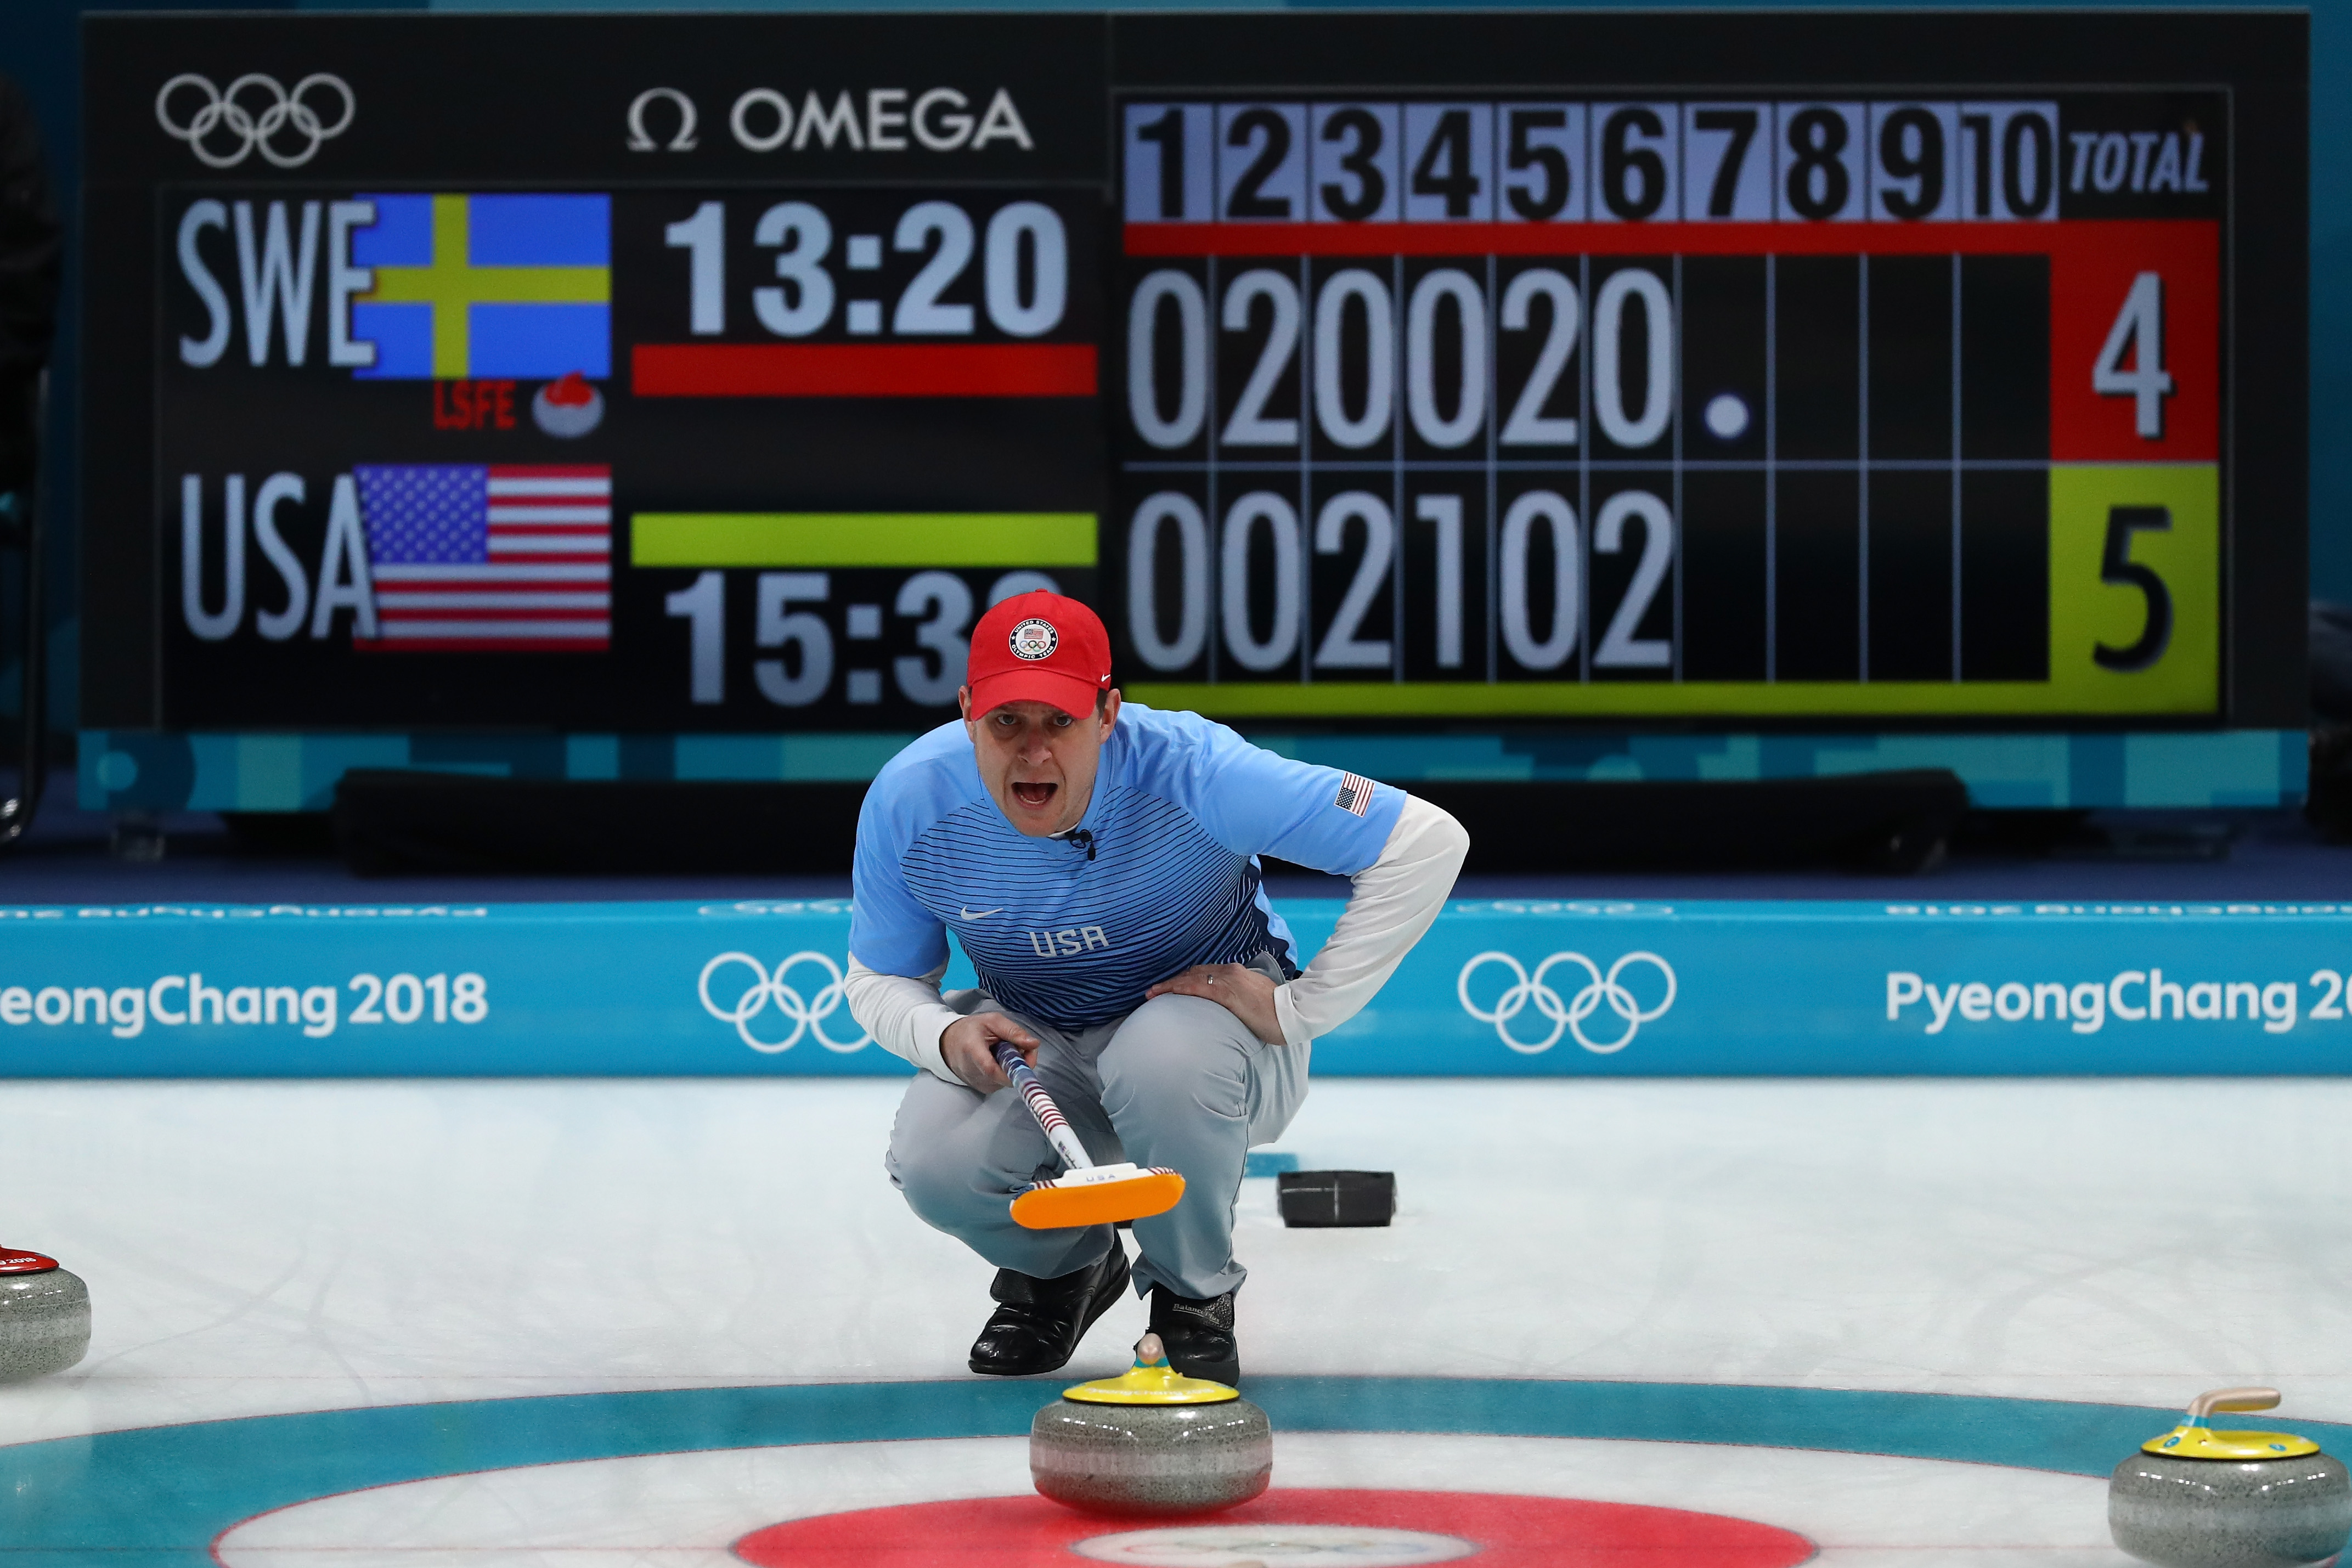 John Shuster of the United States lines up a shot against Sweden during the Curling Men's Gold Medal game on day fifteen of the PyeongChang 2018 Winter Olympic Games at Gangneung Curling Centre on February 24, 2018 in Gangneung, South Korea